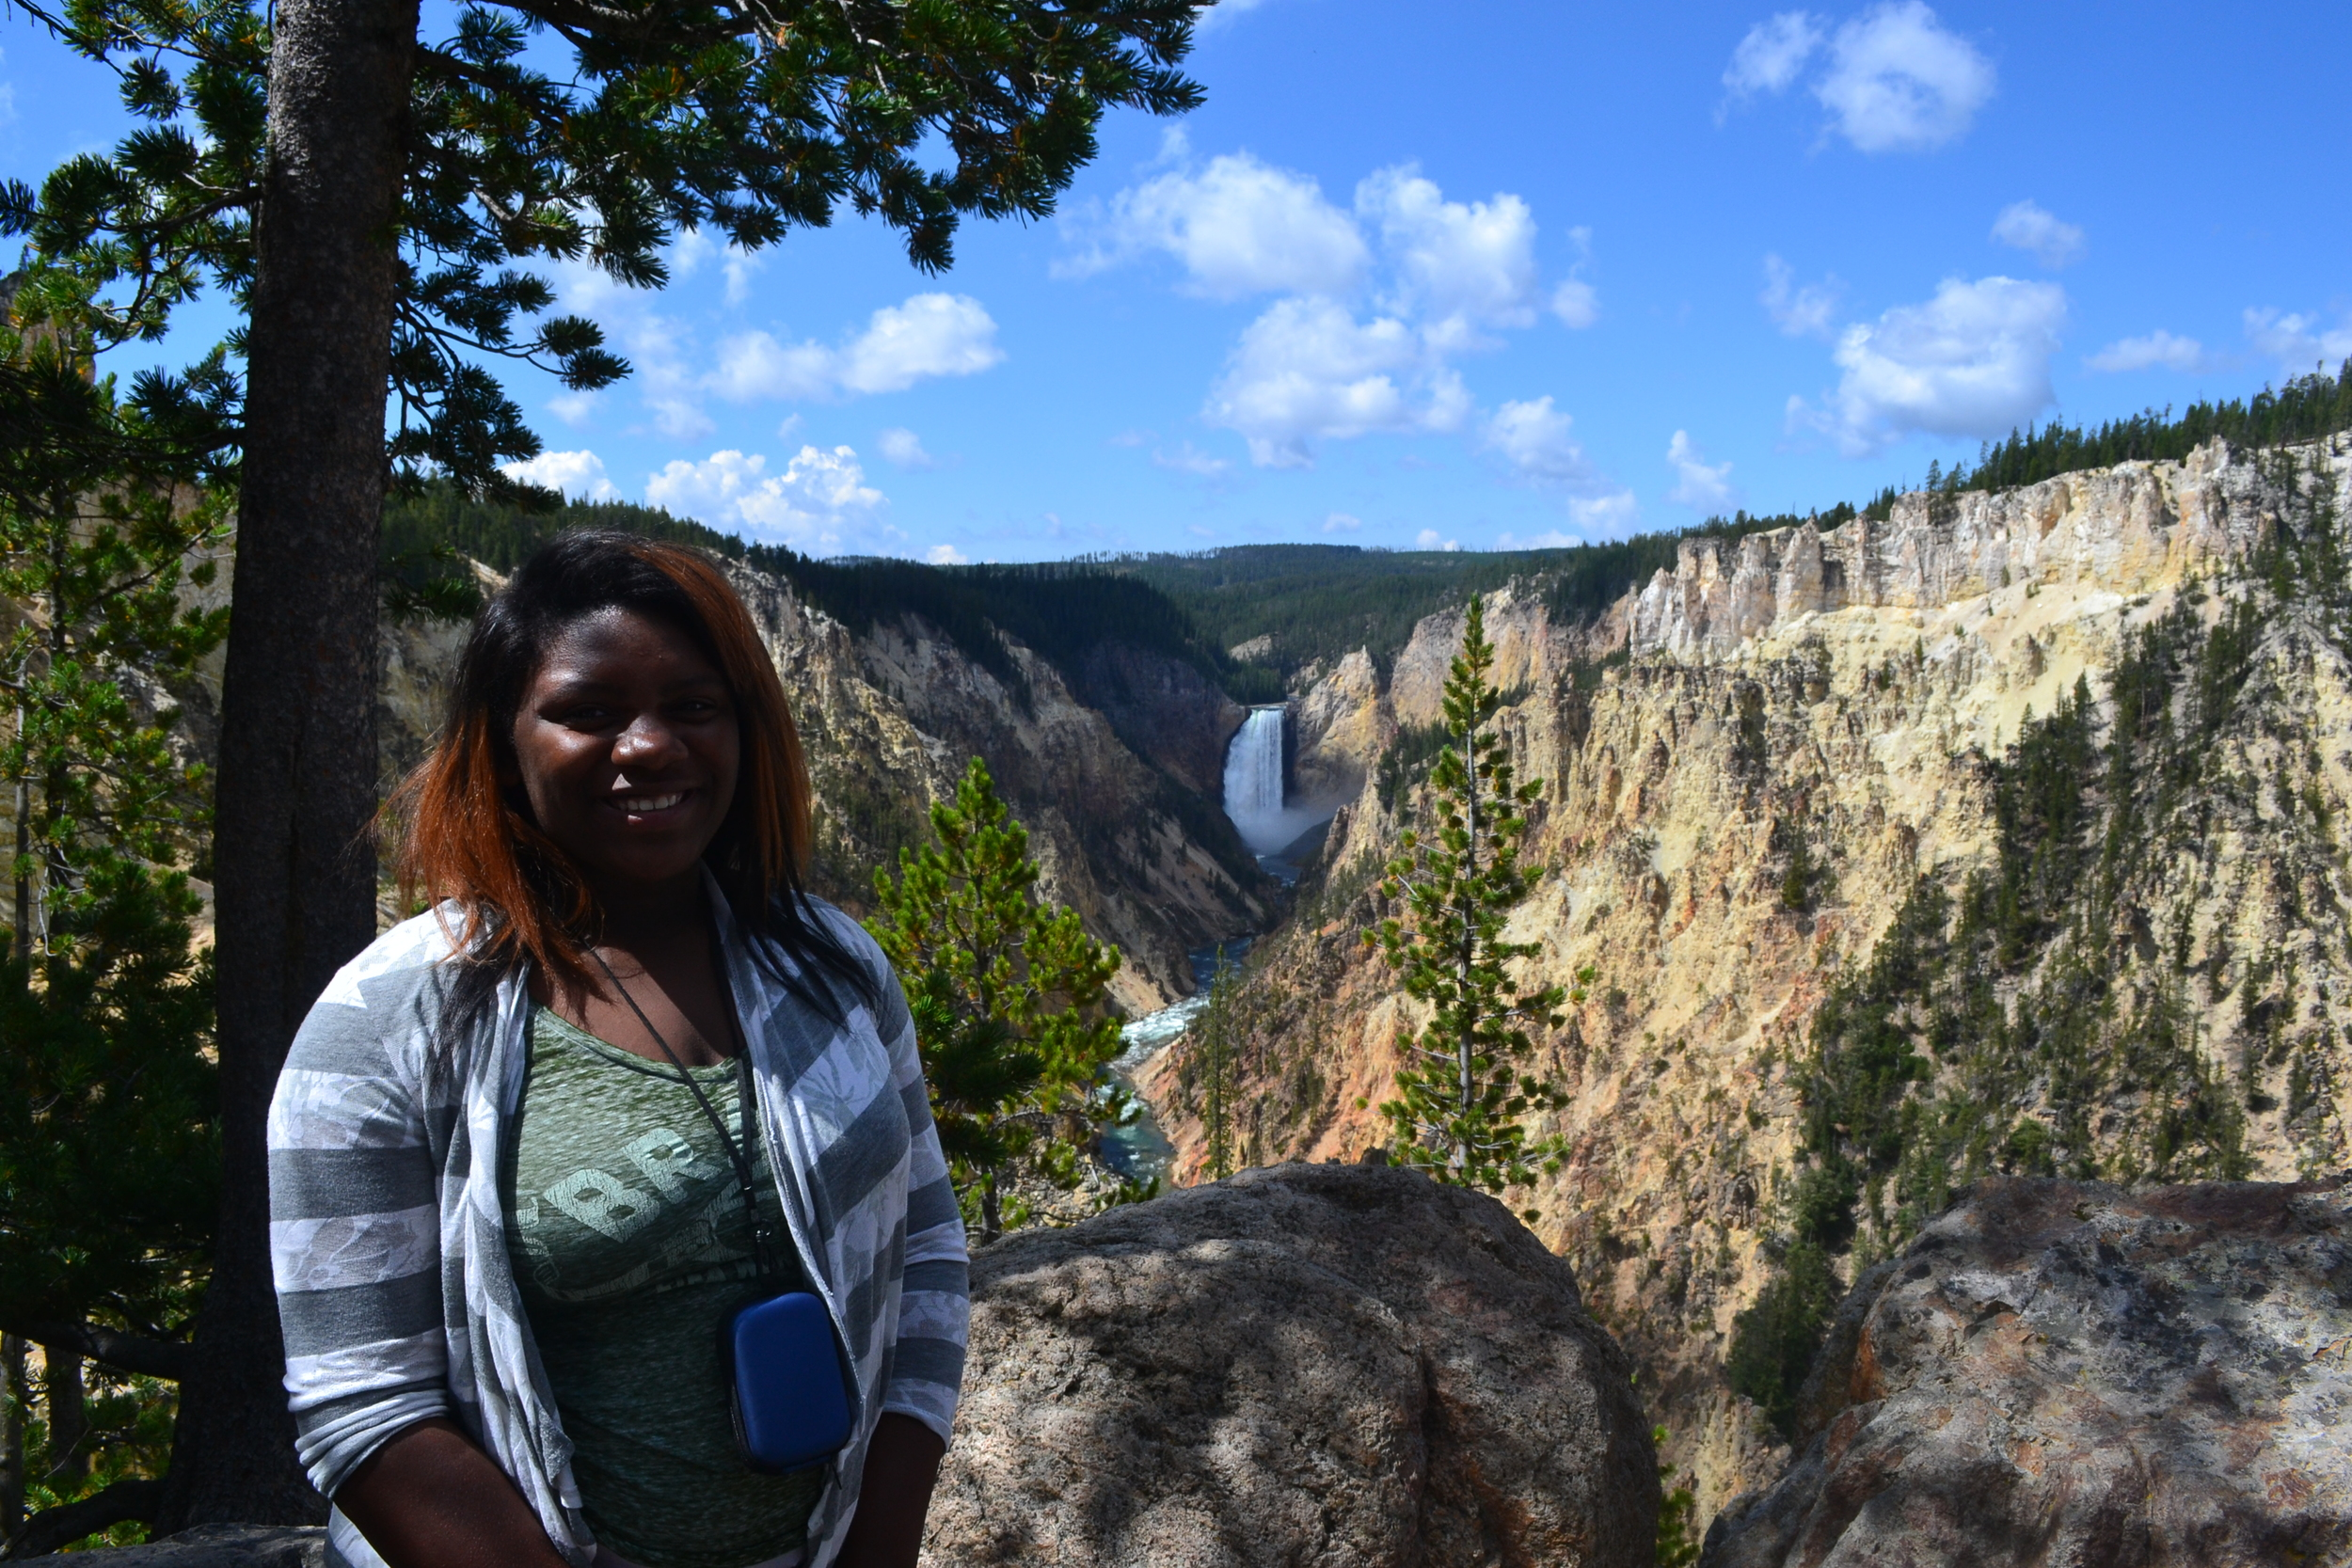 Jayla was selected to attend Groundwork USA's Youth Corps Experience in Yellowstone National Park.